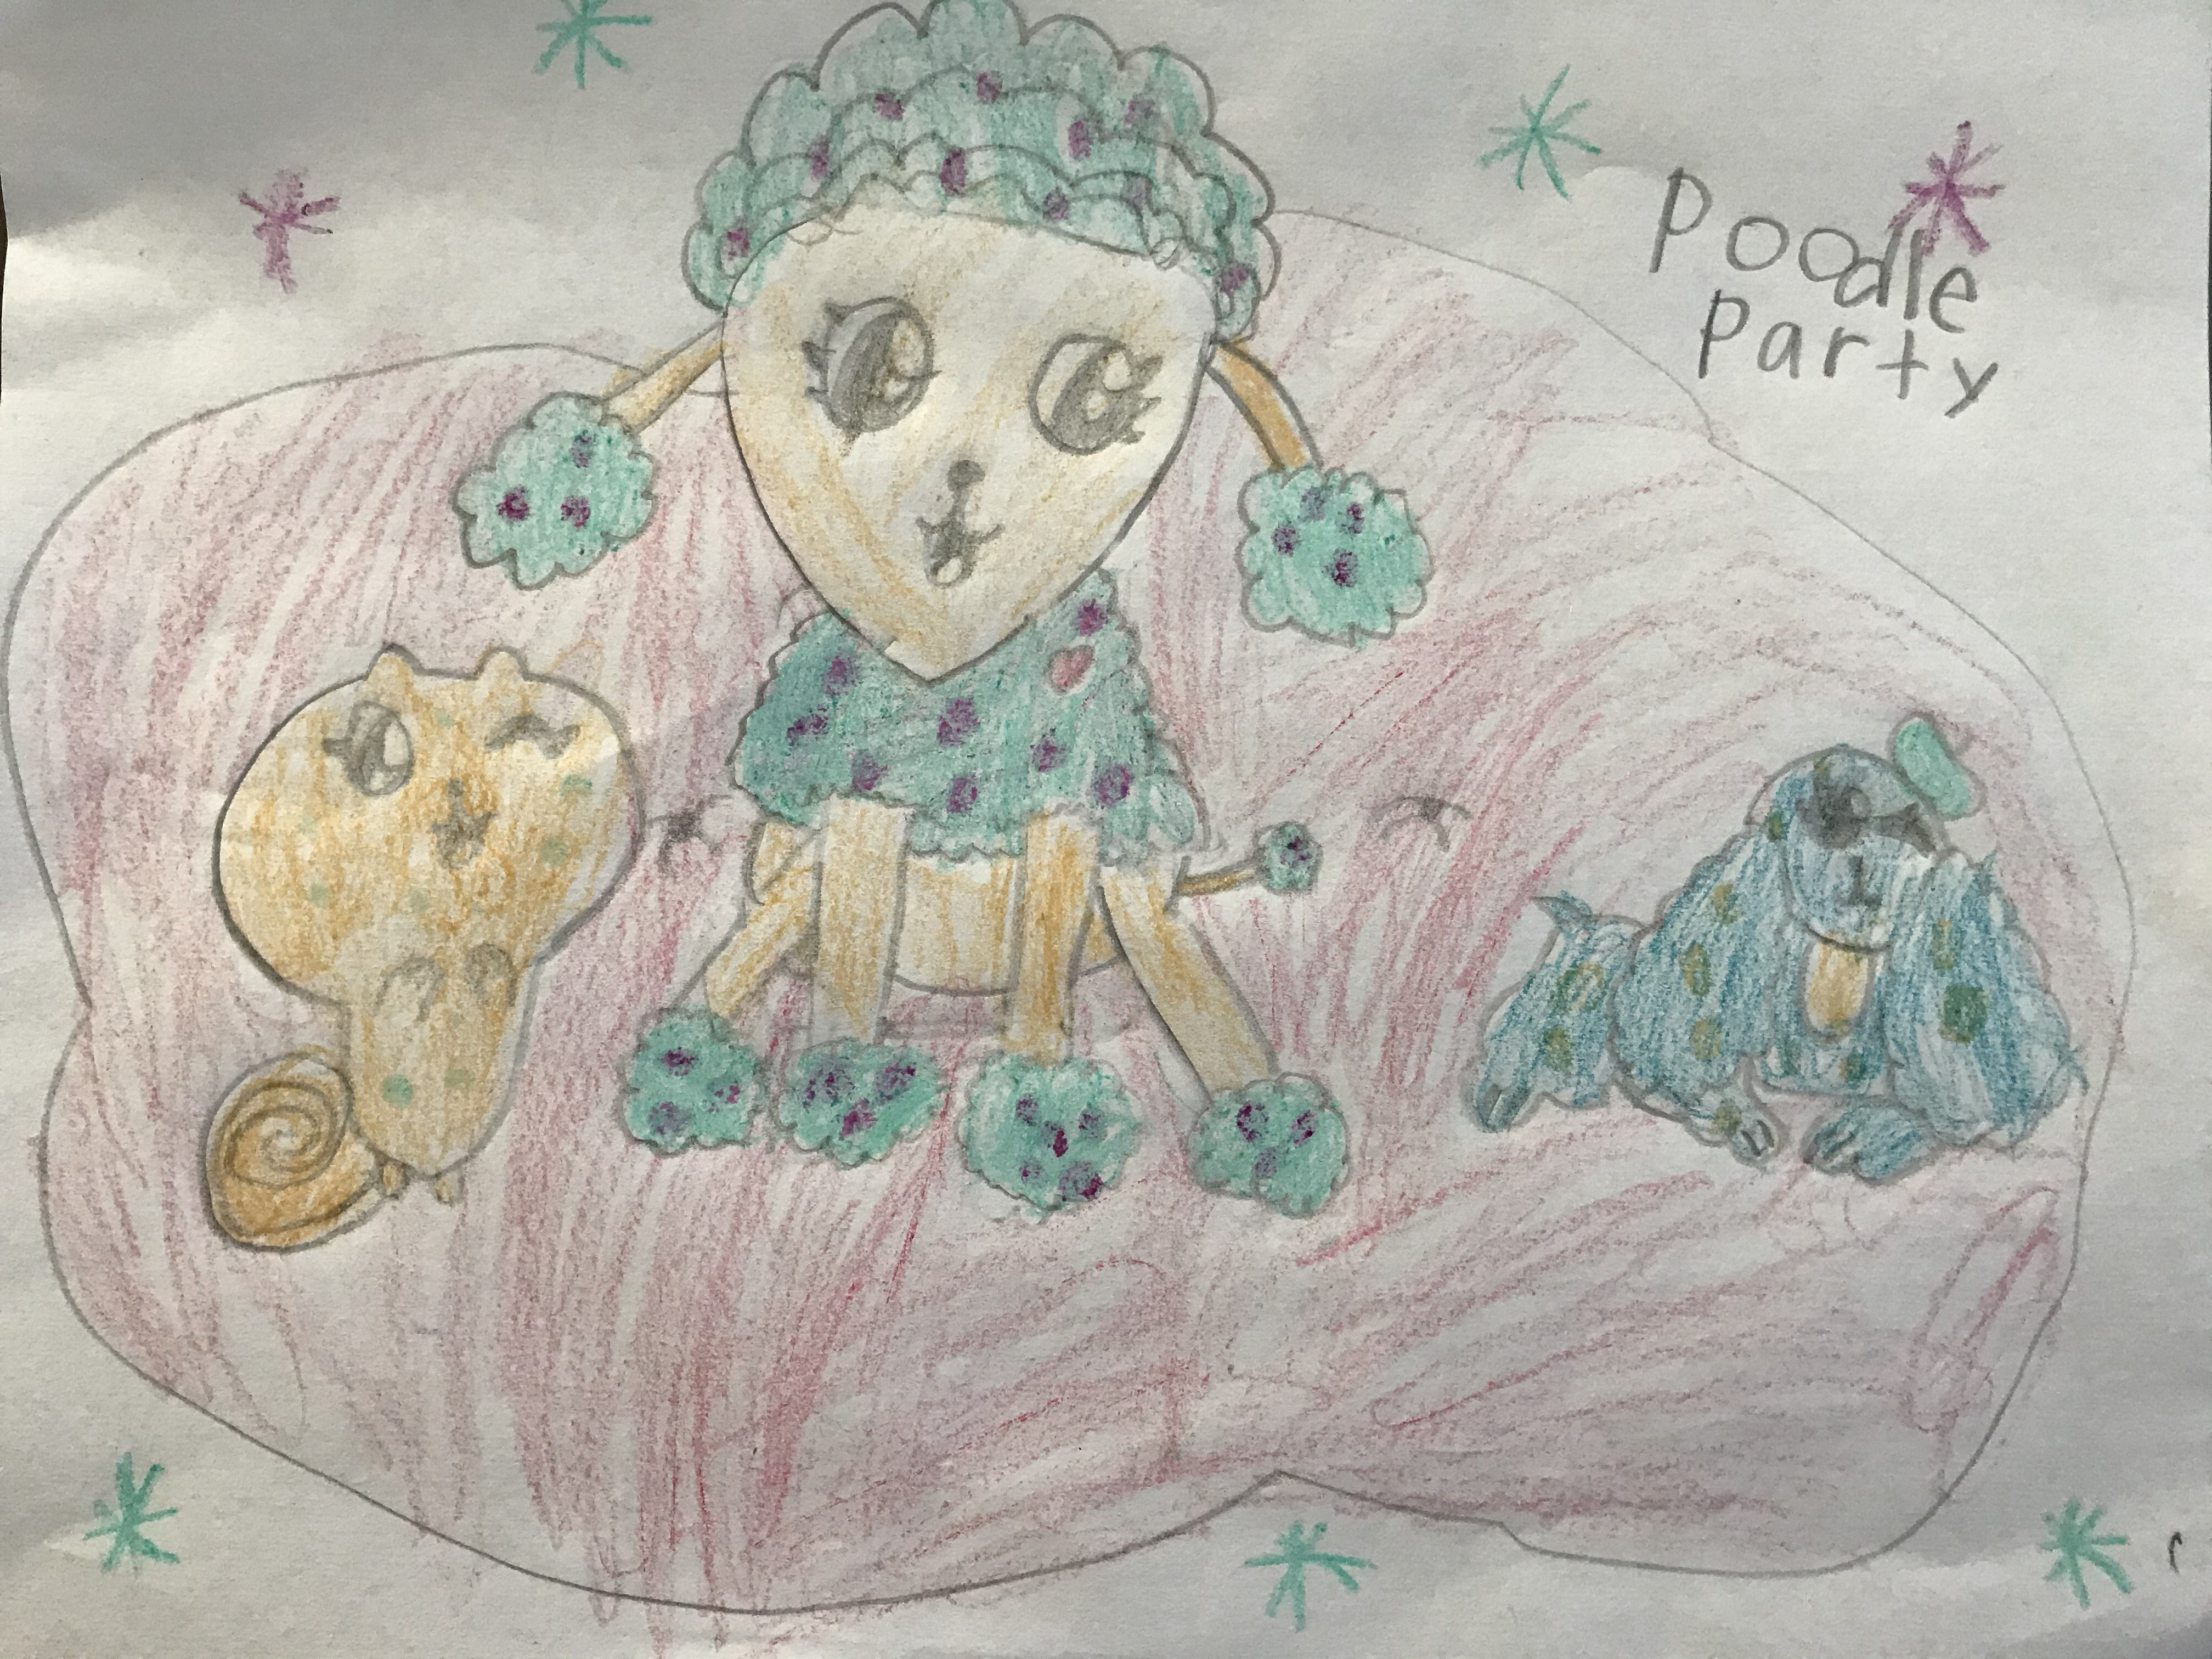 Poodle Party by Hannah Pate